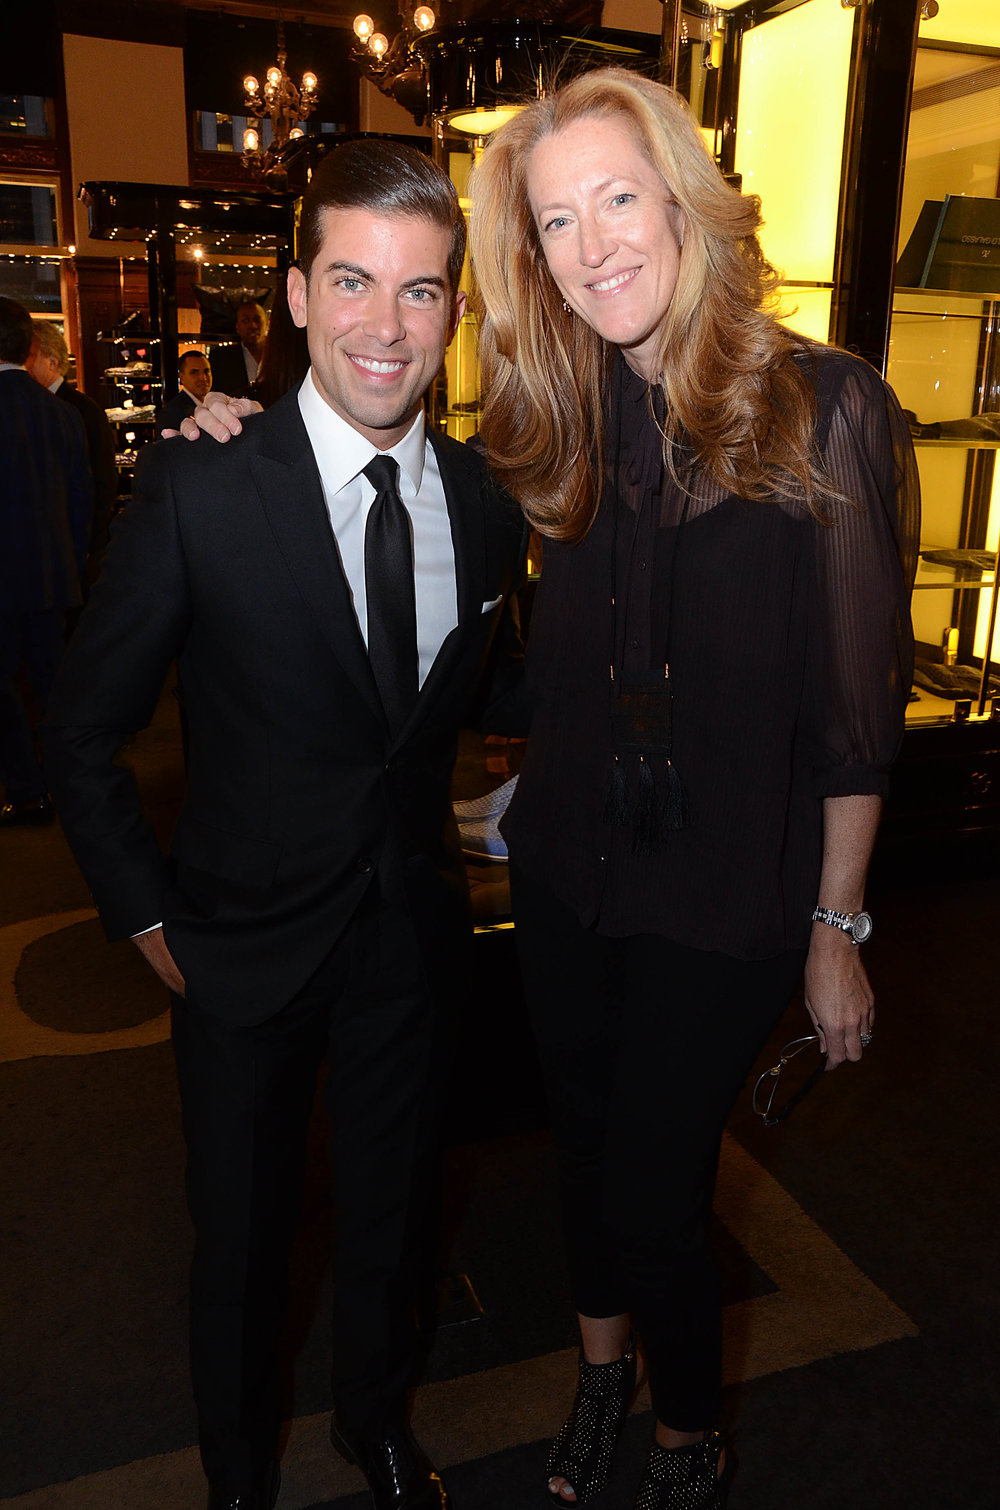 Manhattan Magazine and Platinum Poire Event 10.15.15 - photo by Andrew Werner, AHW_2684.jpg